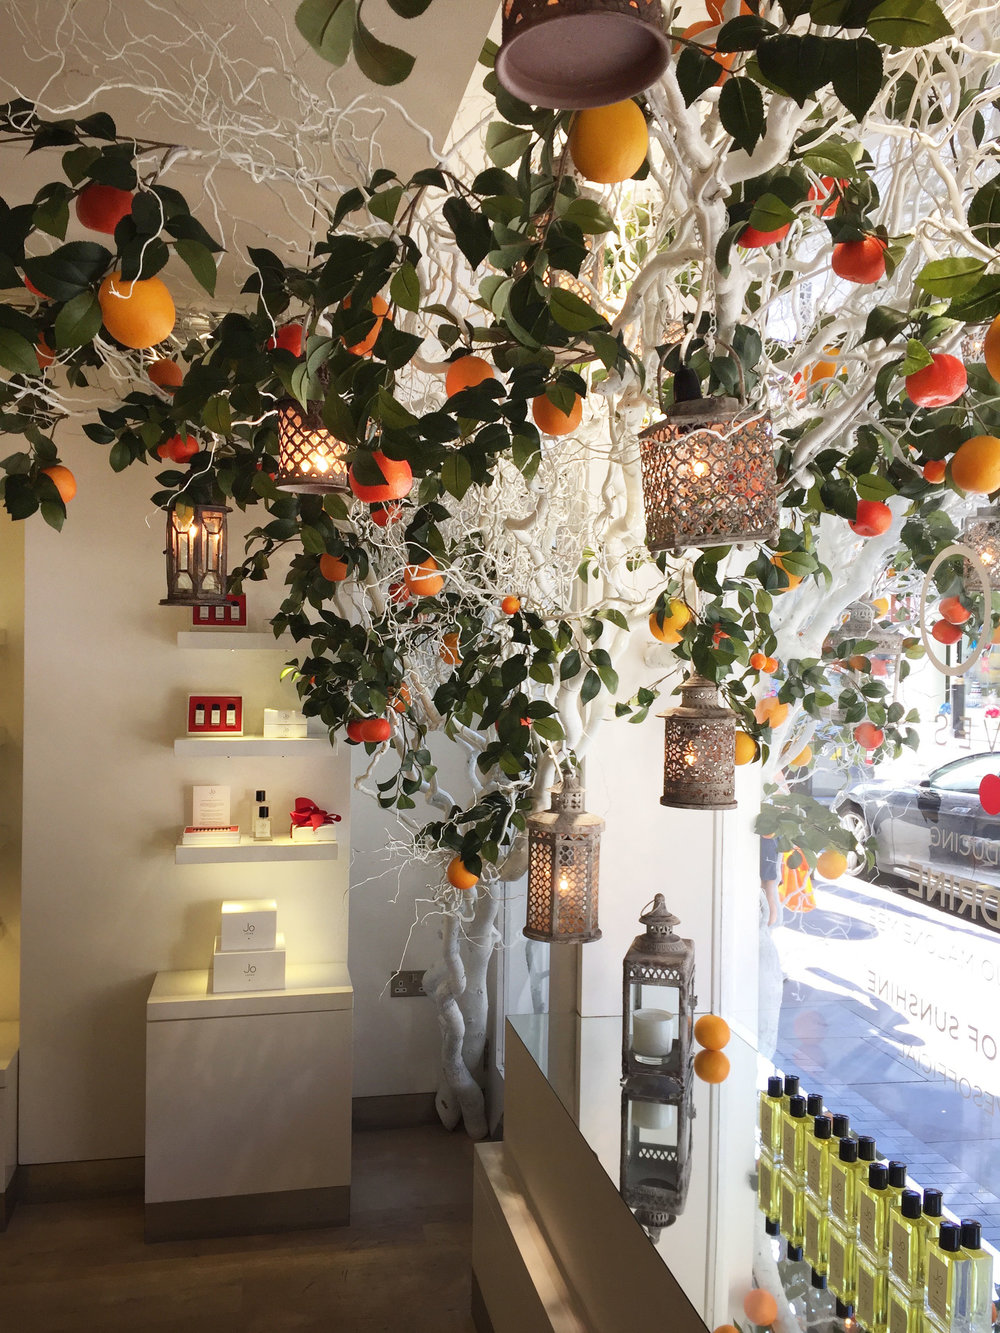 The Mandrine tree is bedecked with oranges and orange foliage. Hanging from the tree is an array of Moorish style lanterns providing warm and subtle lighting.